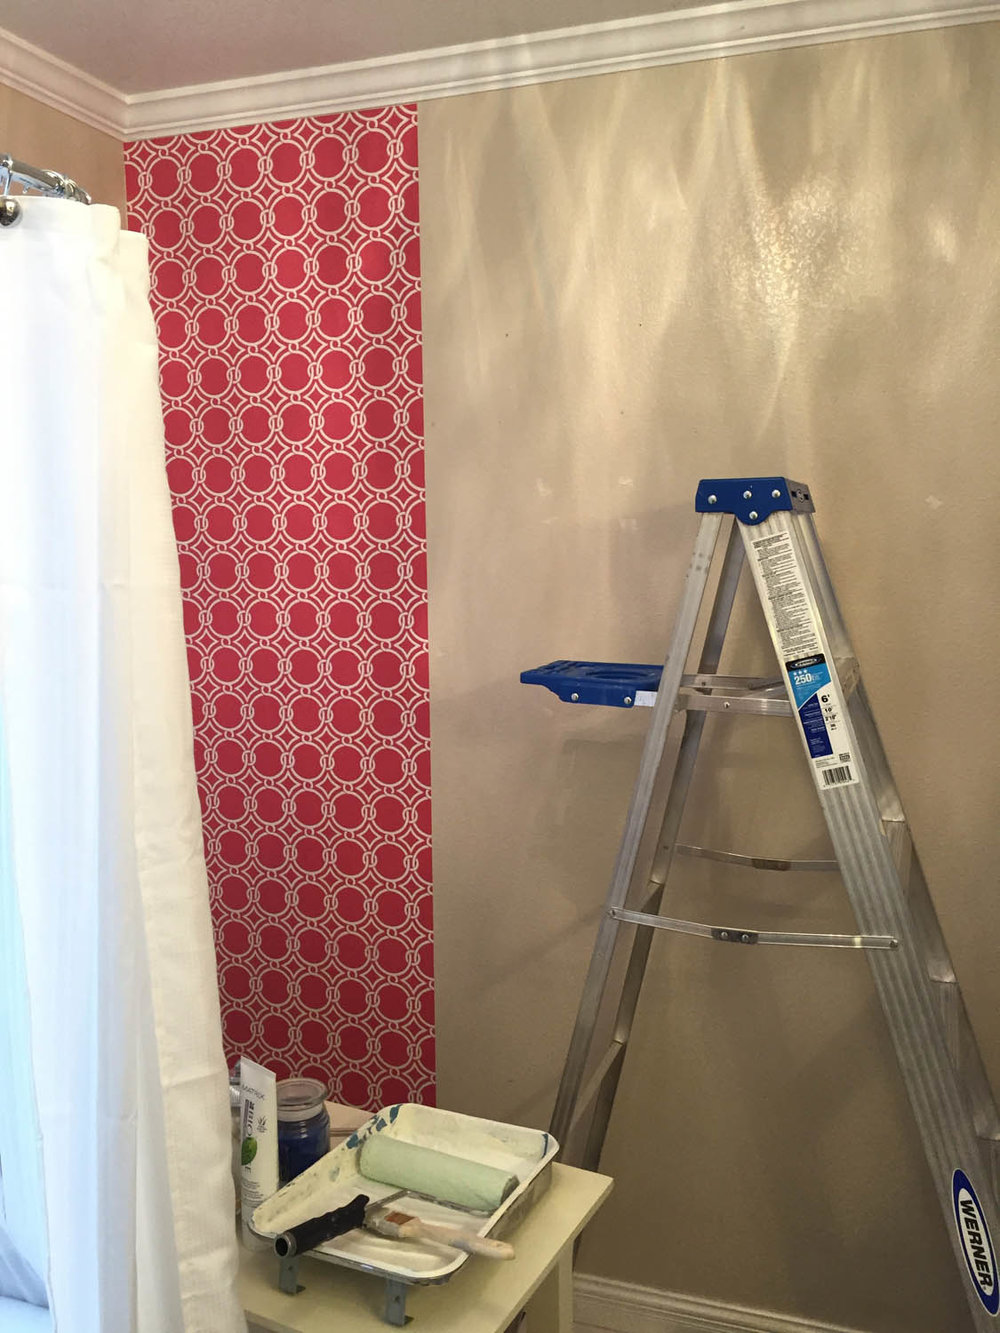 First strip of wallpaper in master bathroom at Curtice Cottage.